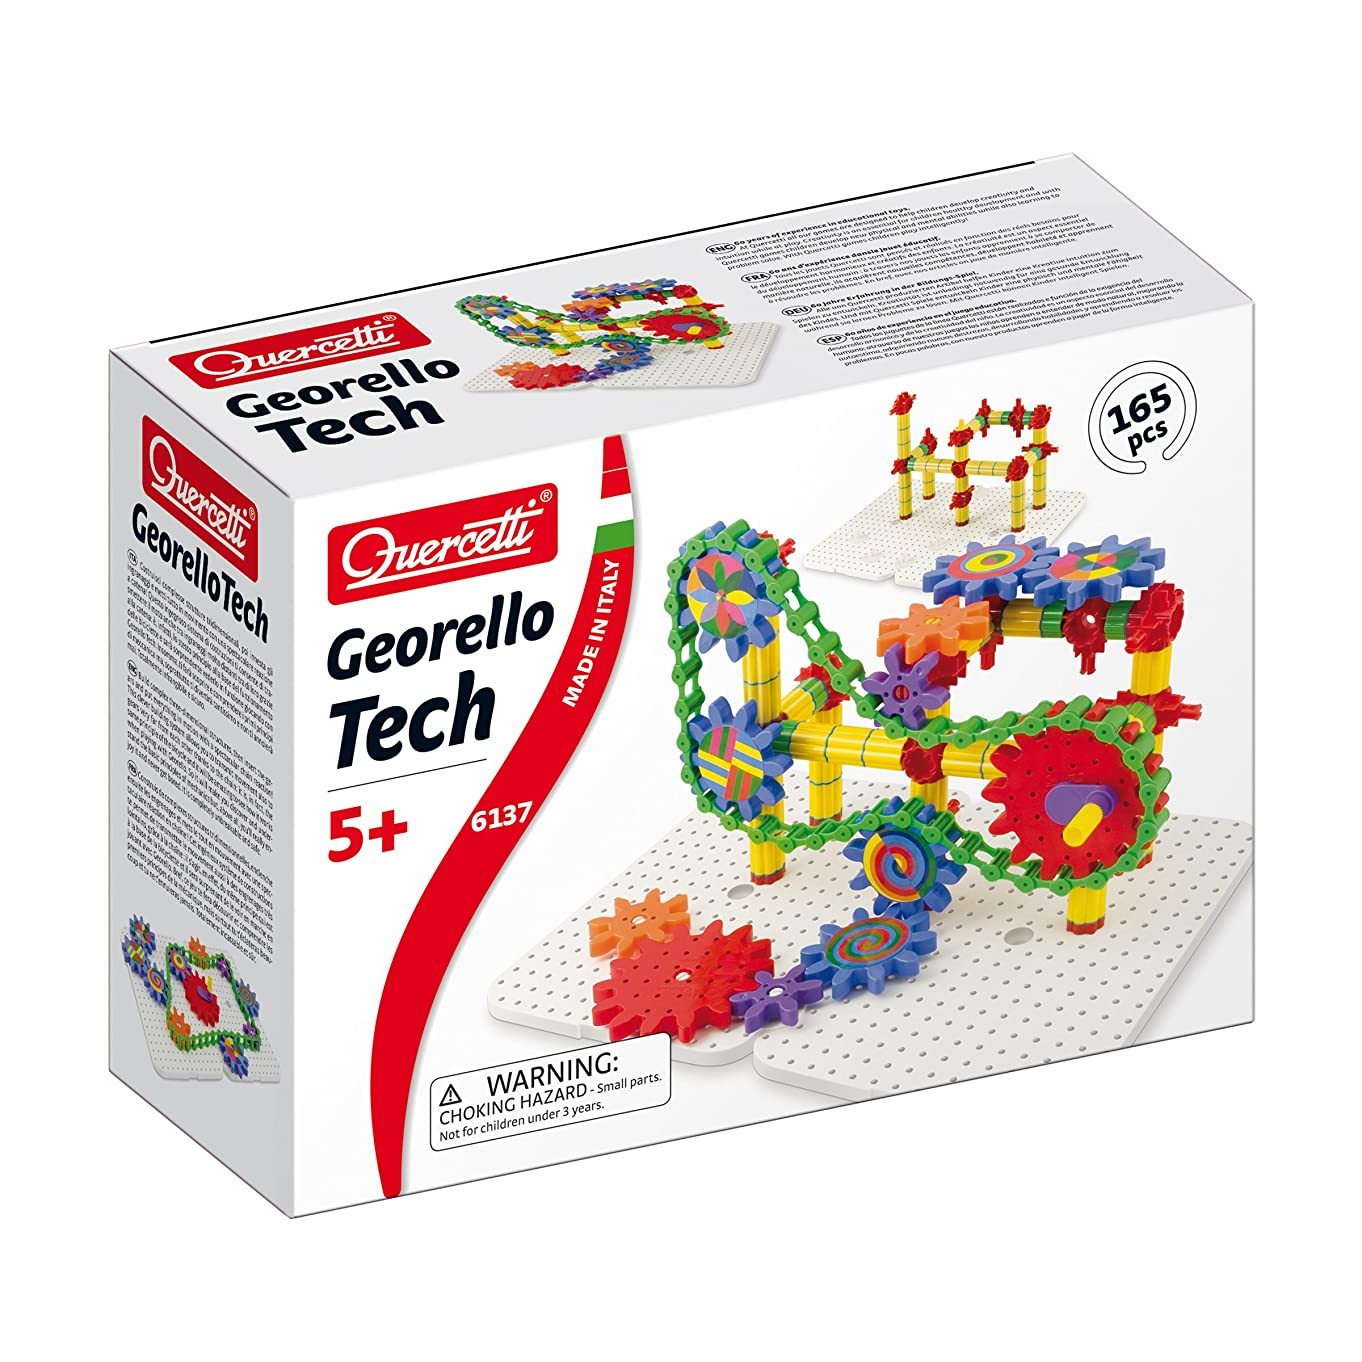 Quercetti Georello Tech Three-Dimensional Structure (165 Piece)